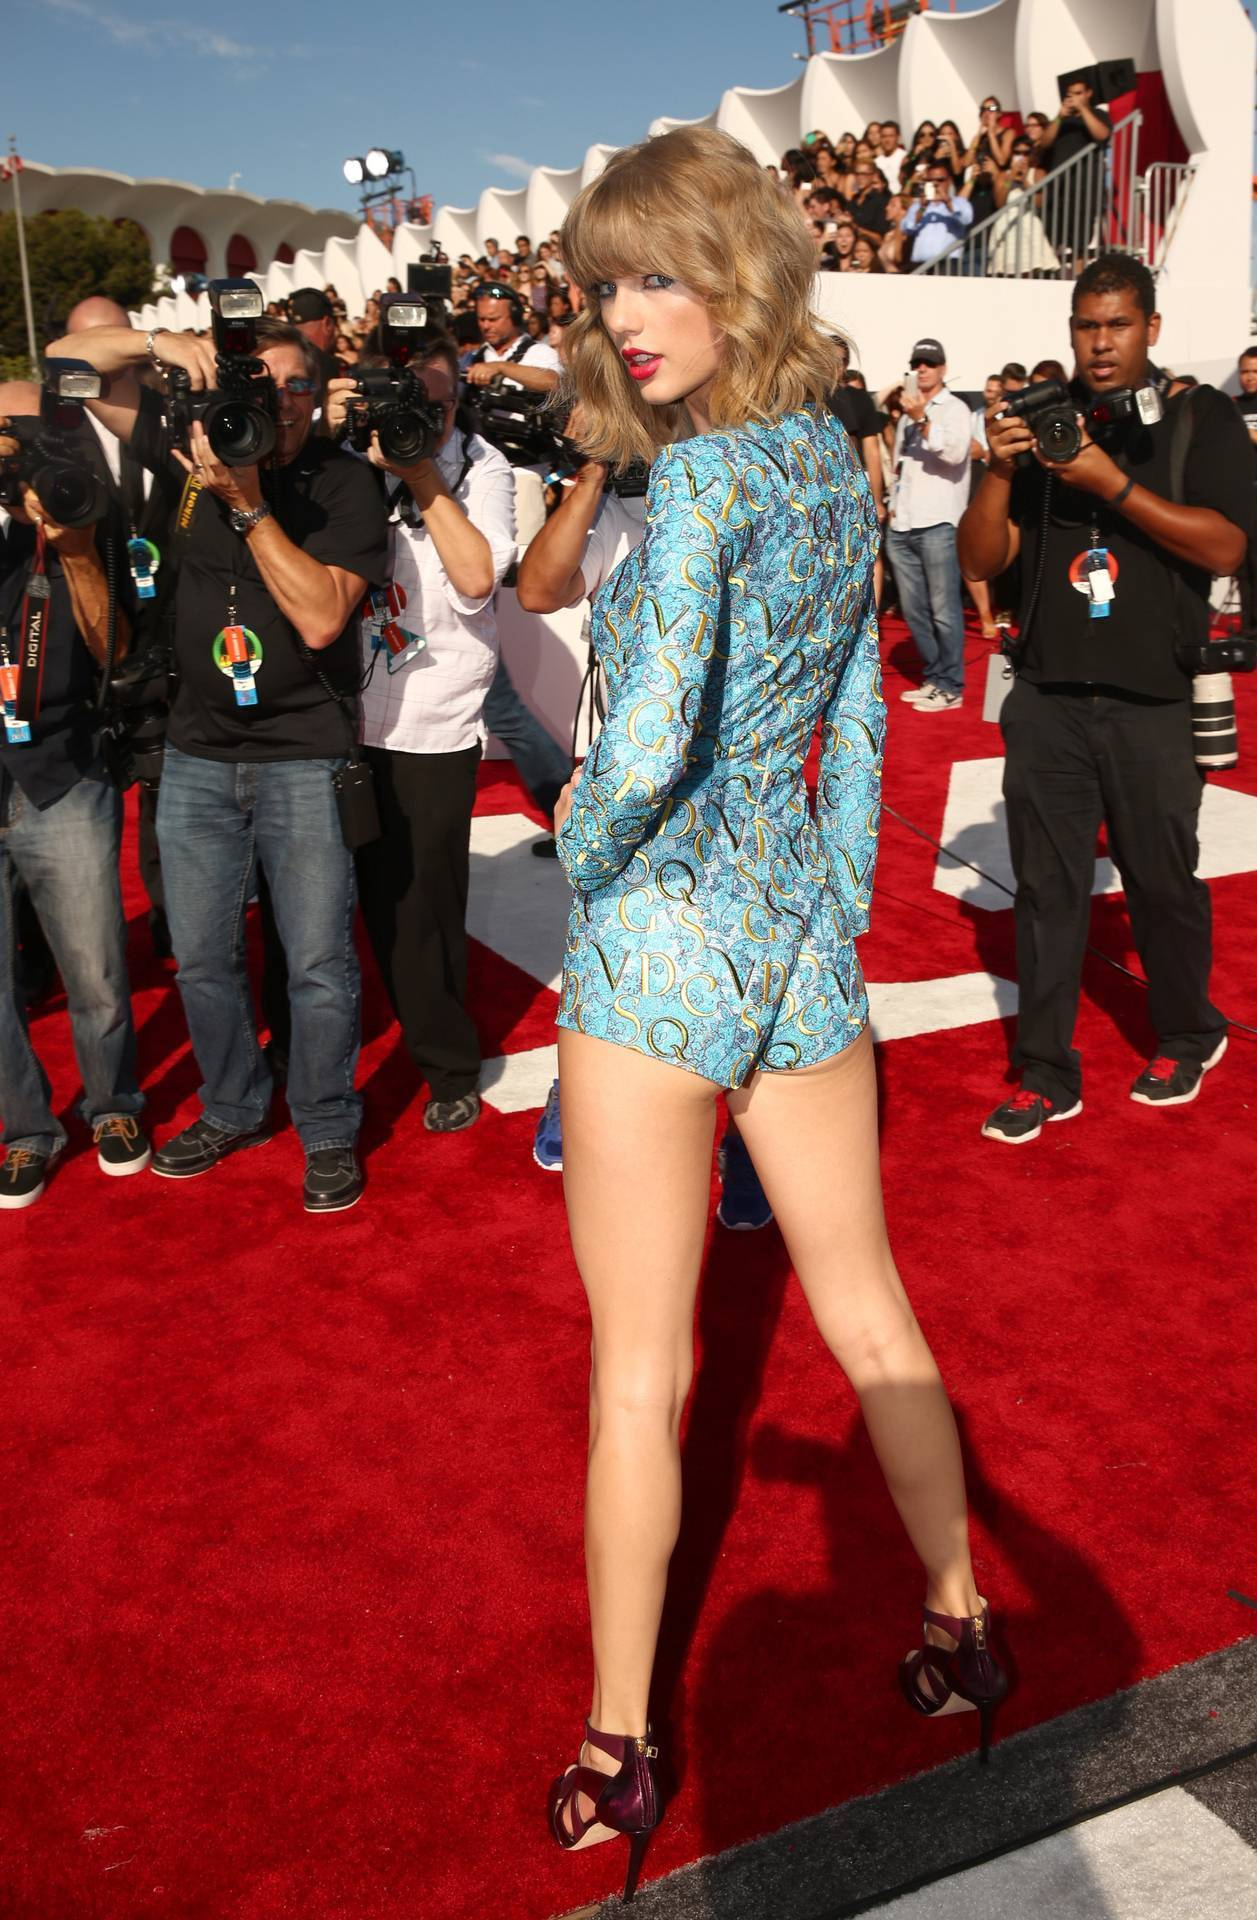 133179-taylor-swift-hot-ass-legs-red-o1xz • Η Άποψη